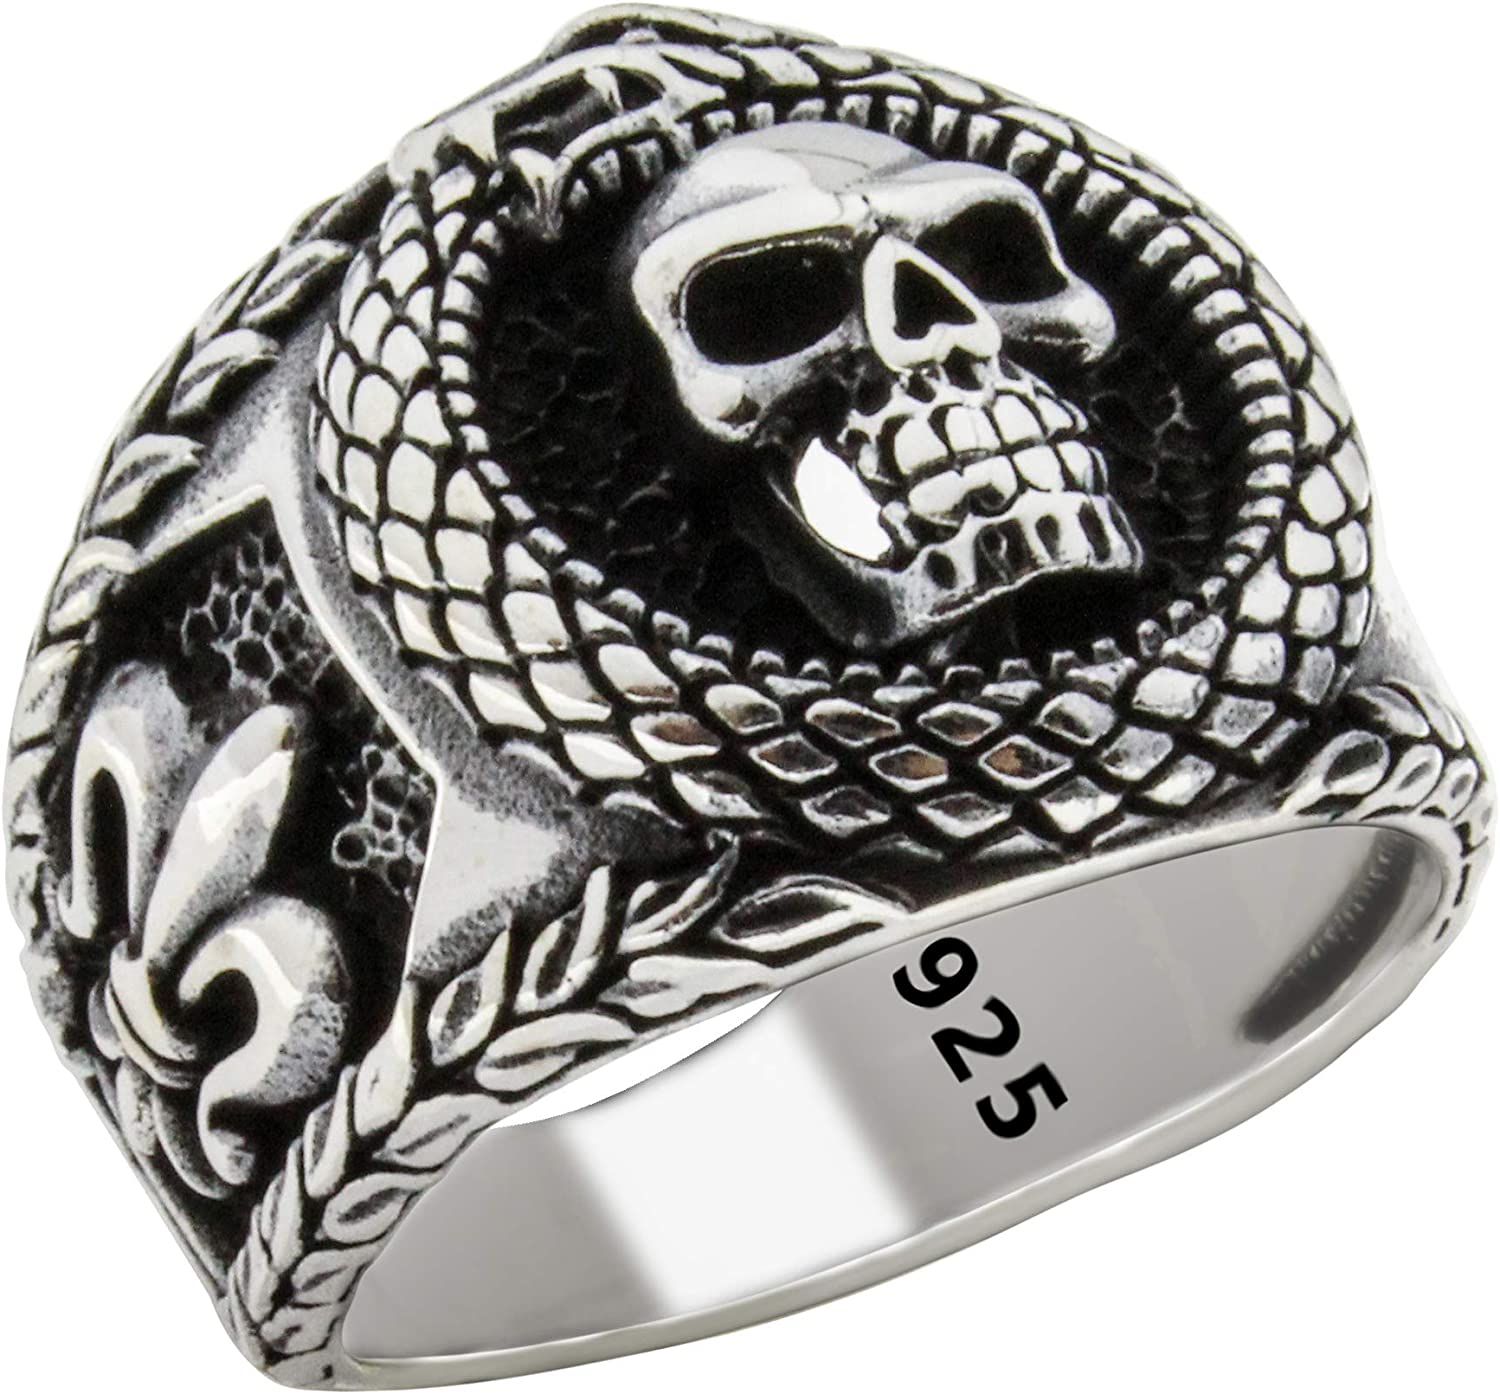 Solid 925 Sterling Silver Retro Turkis Skull Luxury Gothic Biker Special shop Campaign